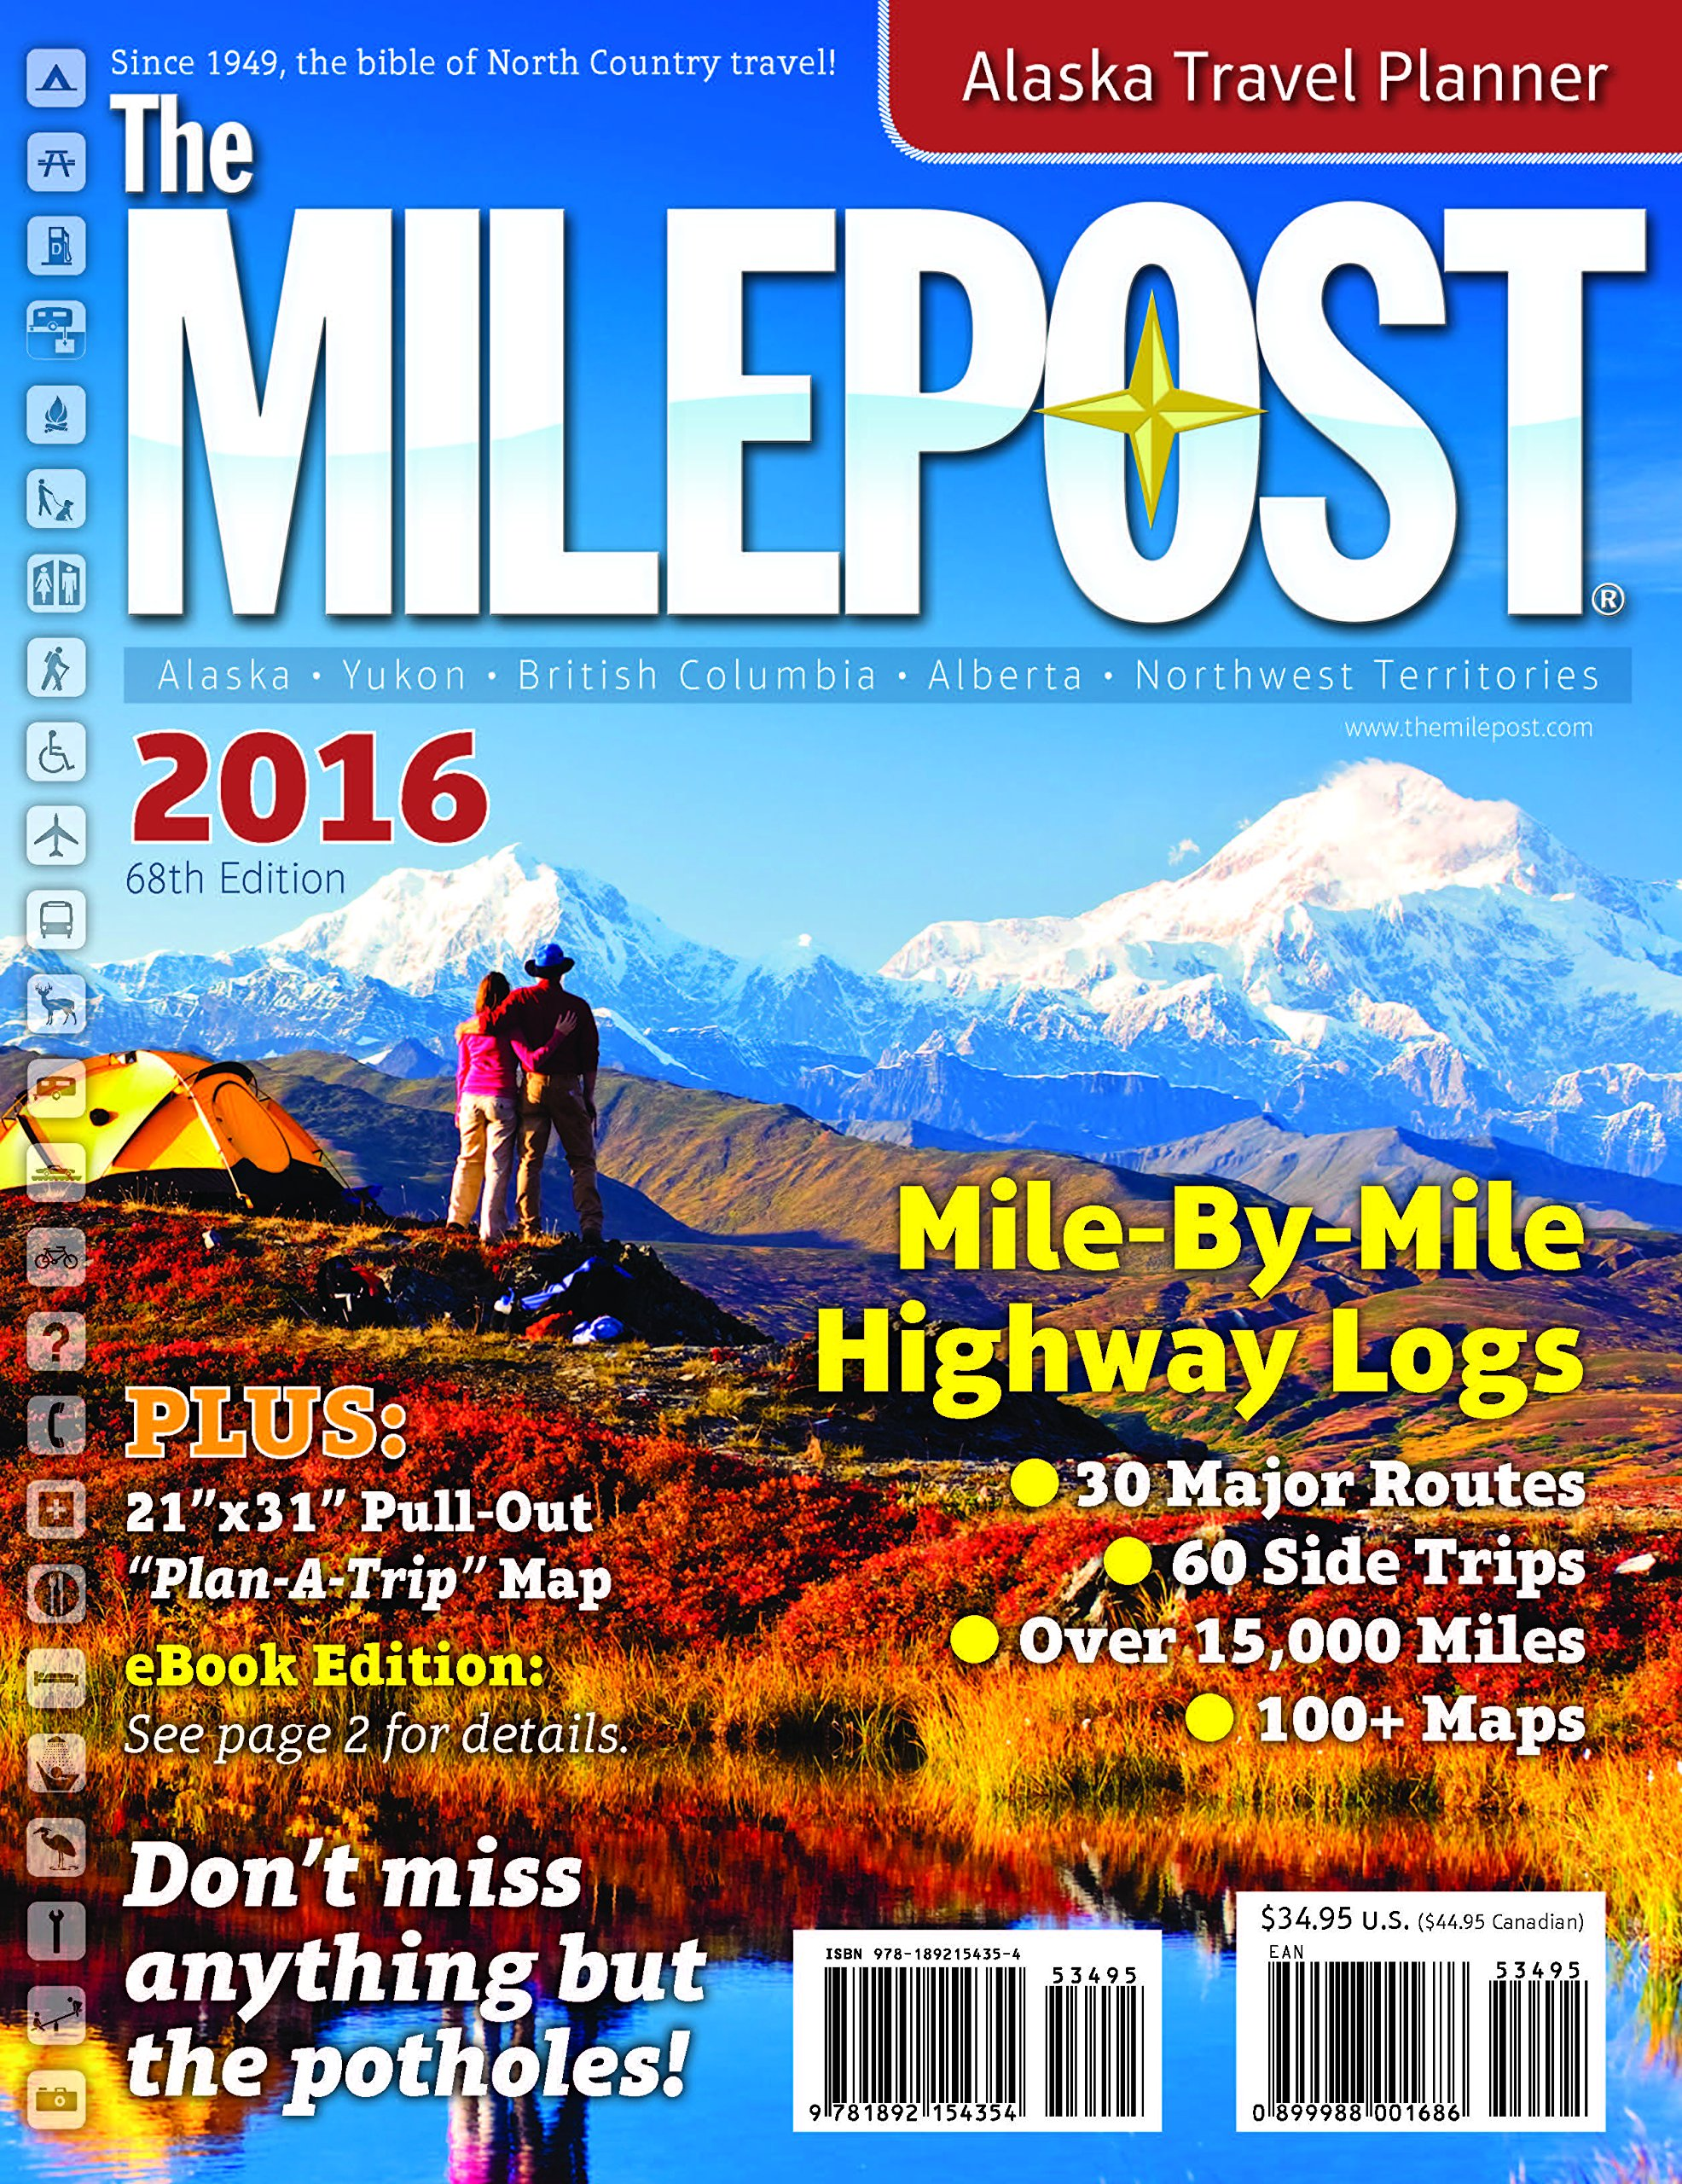 The Milepost Kris Valencia Amazoncom Books - 9 tips for visiting alaska